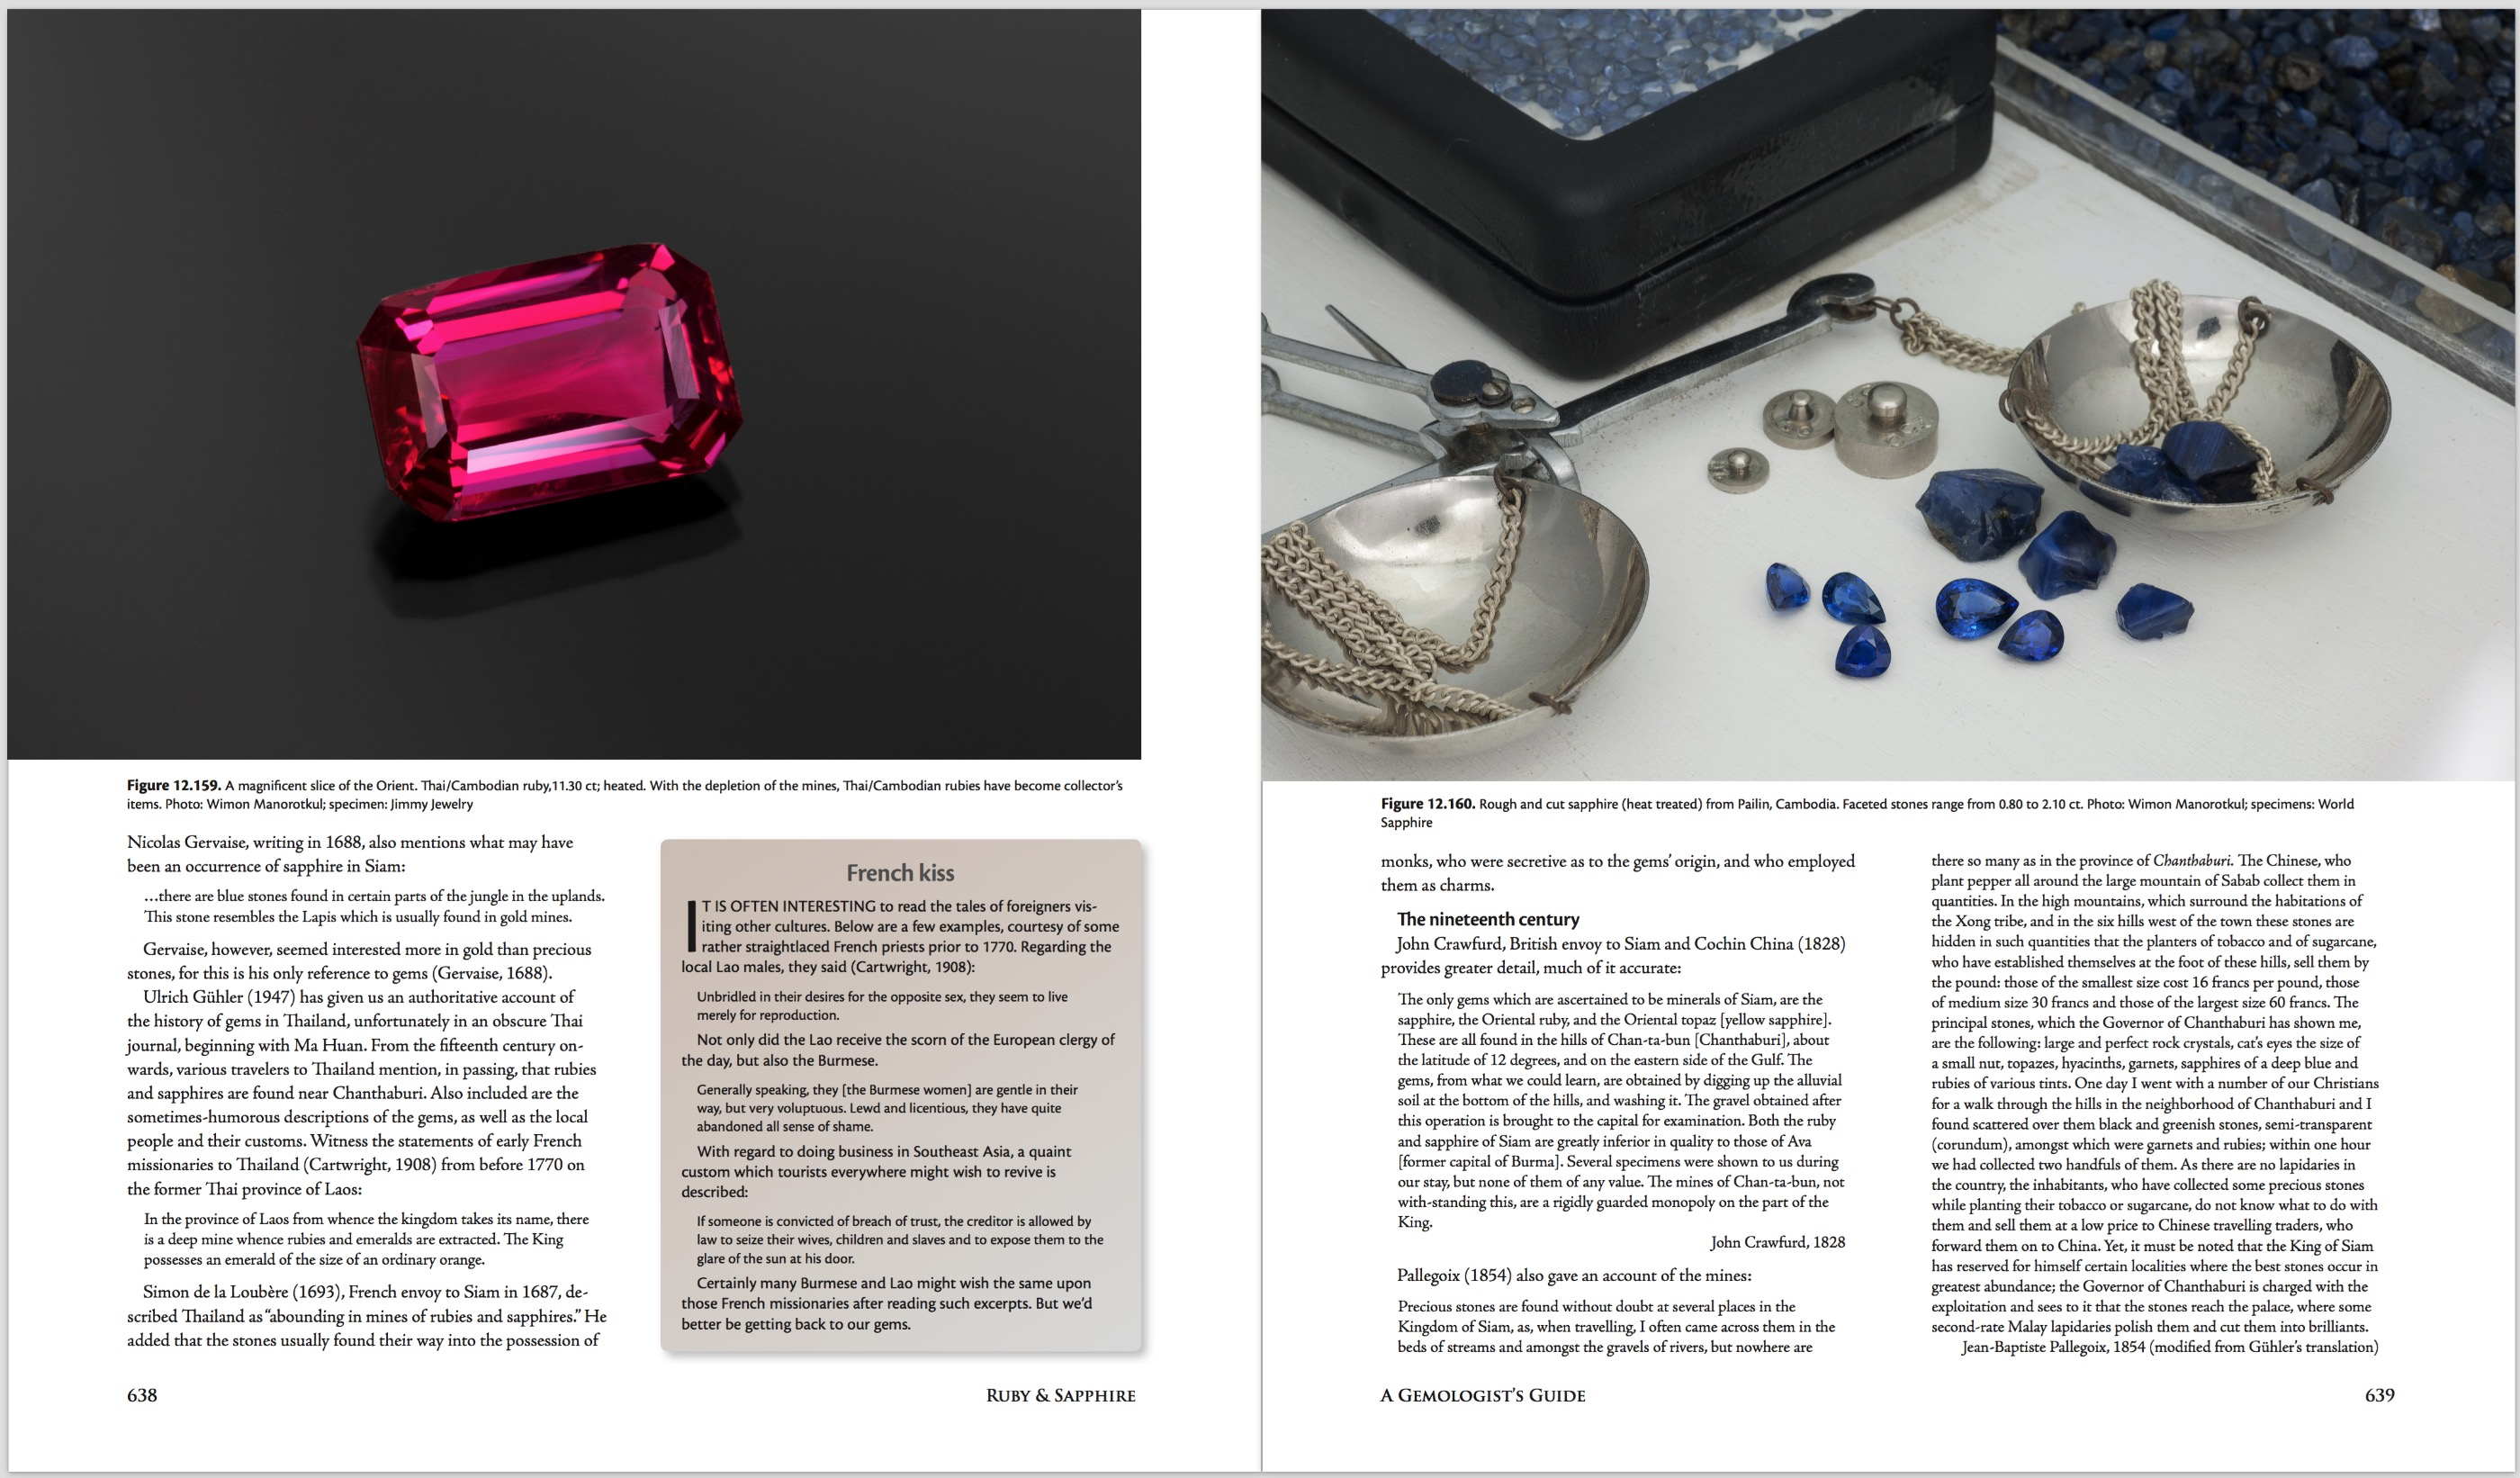 Ruby & Sapphire: A Gemologist's Guide – World Sources: Thailand/Cambodia